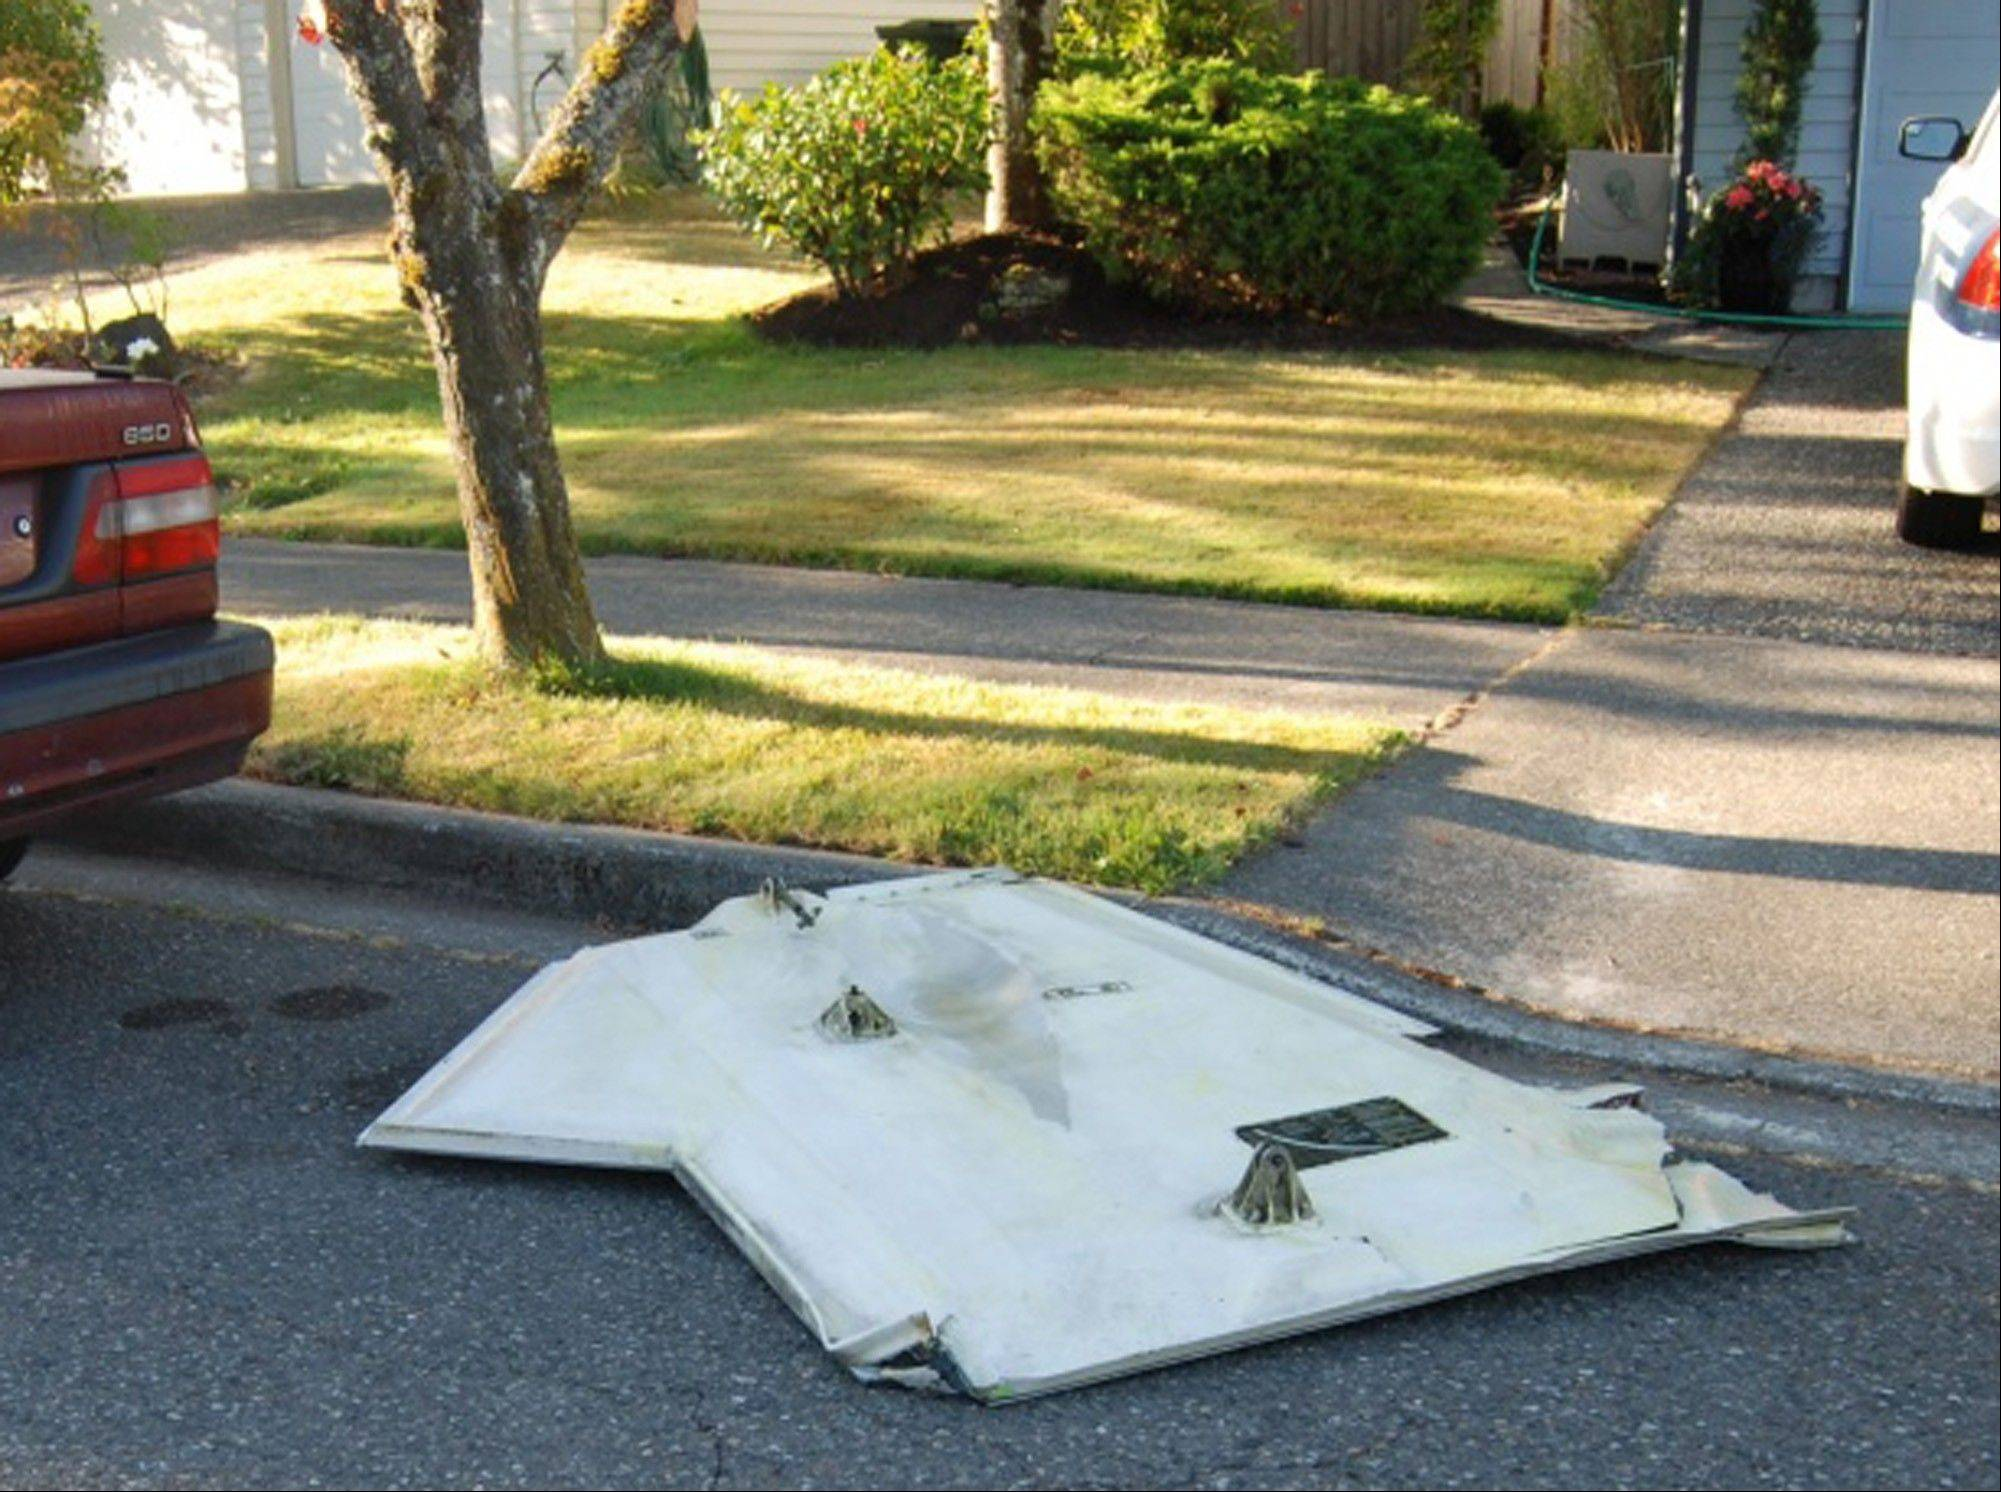 In this photo provided by Leah Dermody, a piece of metal that appears to be a landing gear door from an airplane is lying on the street Friday.